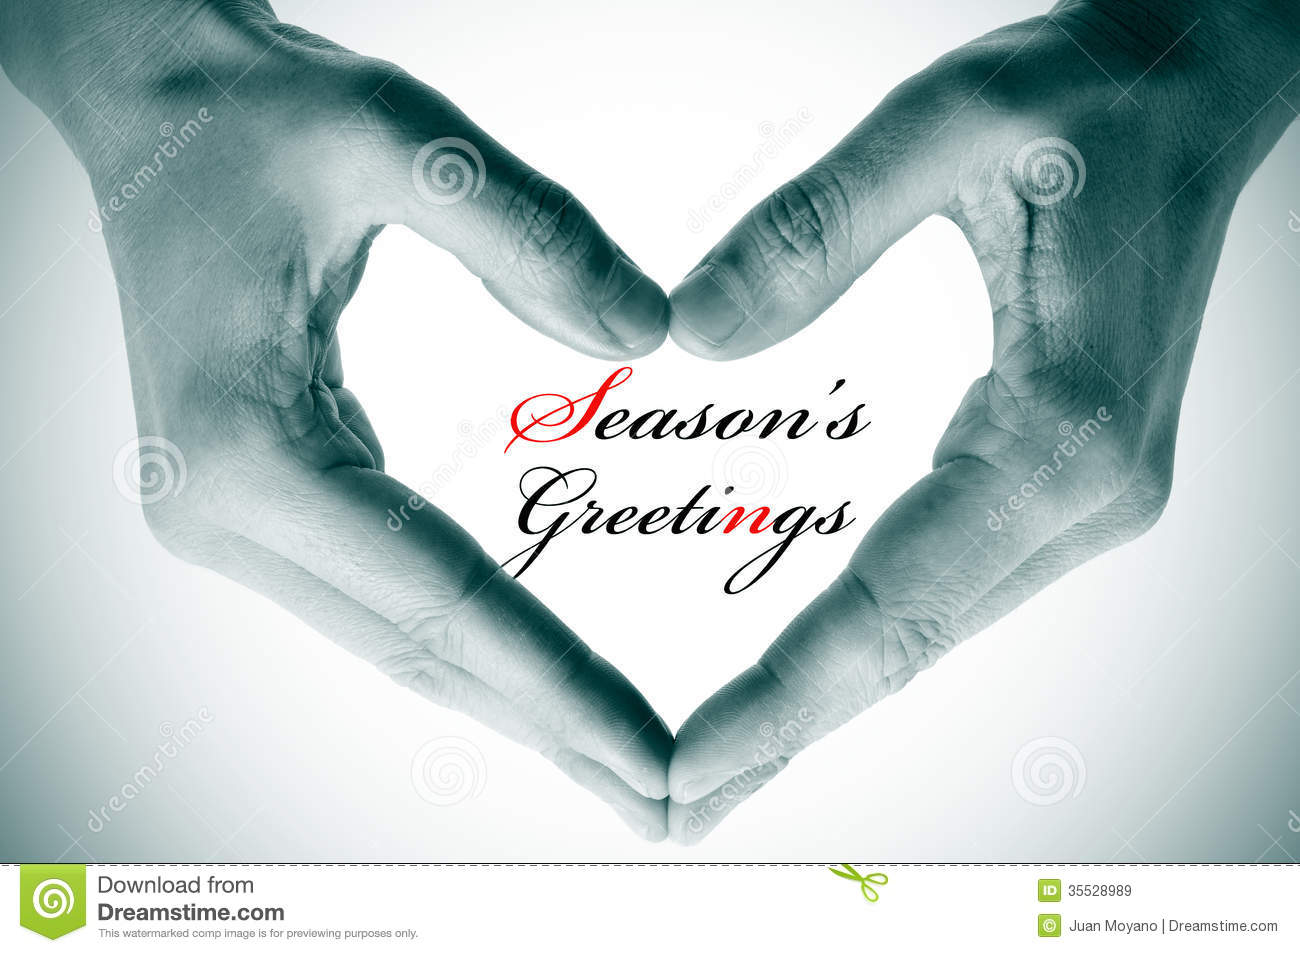 Seasons greetings stock image image of gesture seasonal 35528989 seasons greetings royalty free stock photo m4hsunfo Choice Image